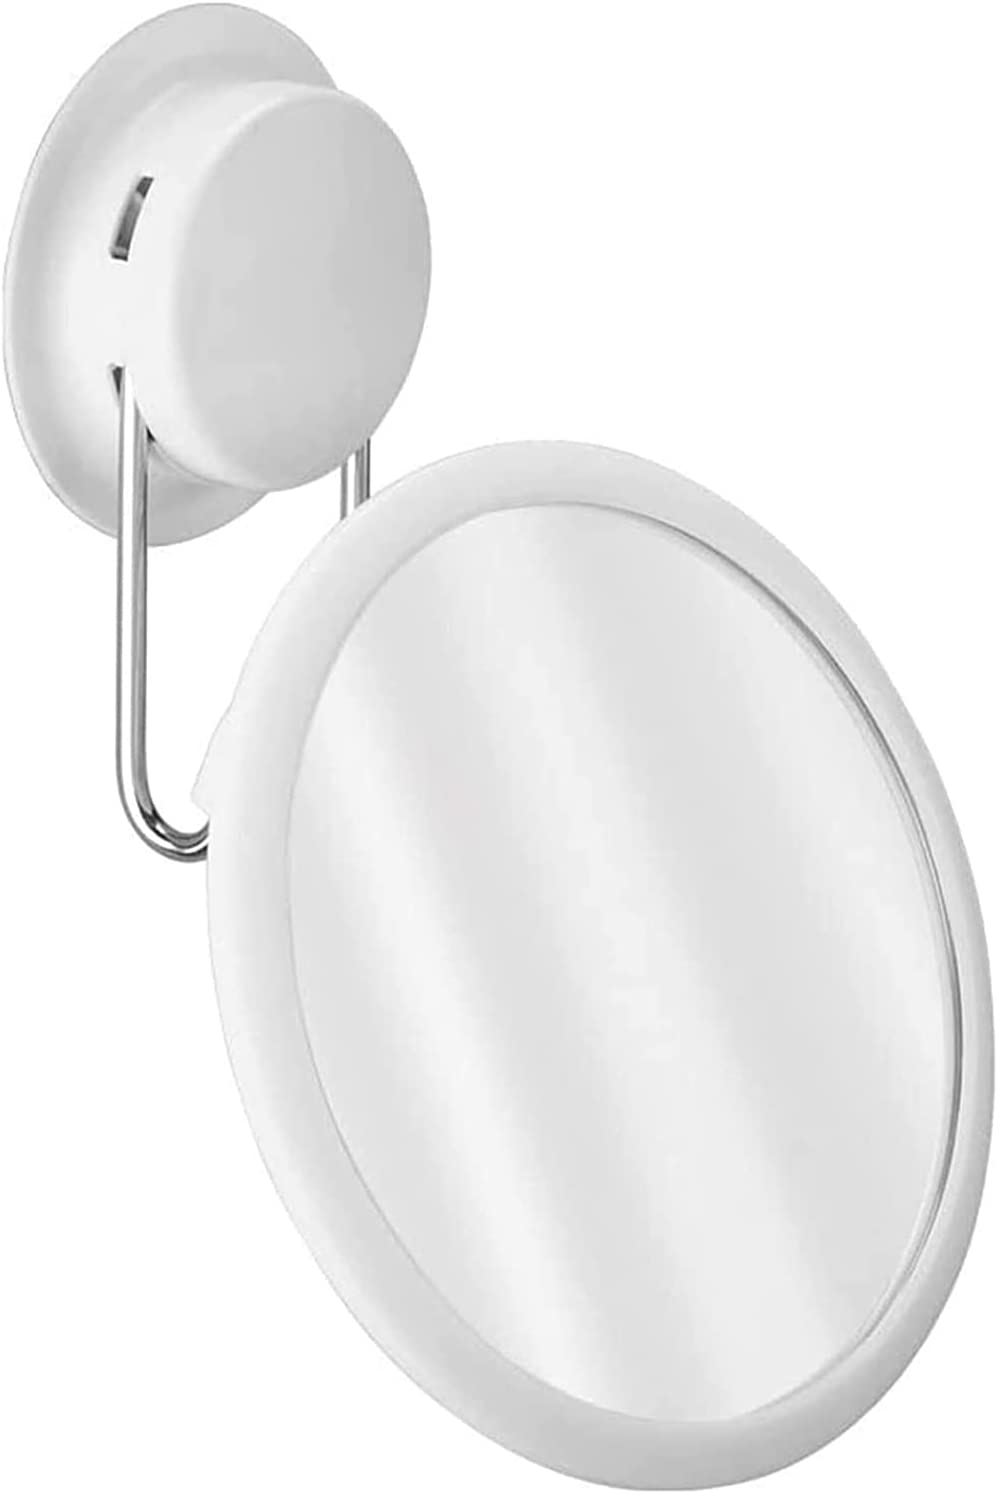 Max 75% OFF ZHJ Suction Cup Wall Mirror L for Max 67% OFF Super Make-up Bathroom